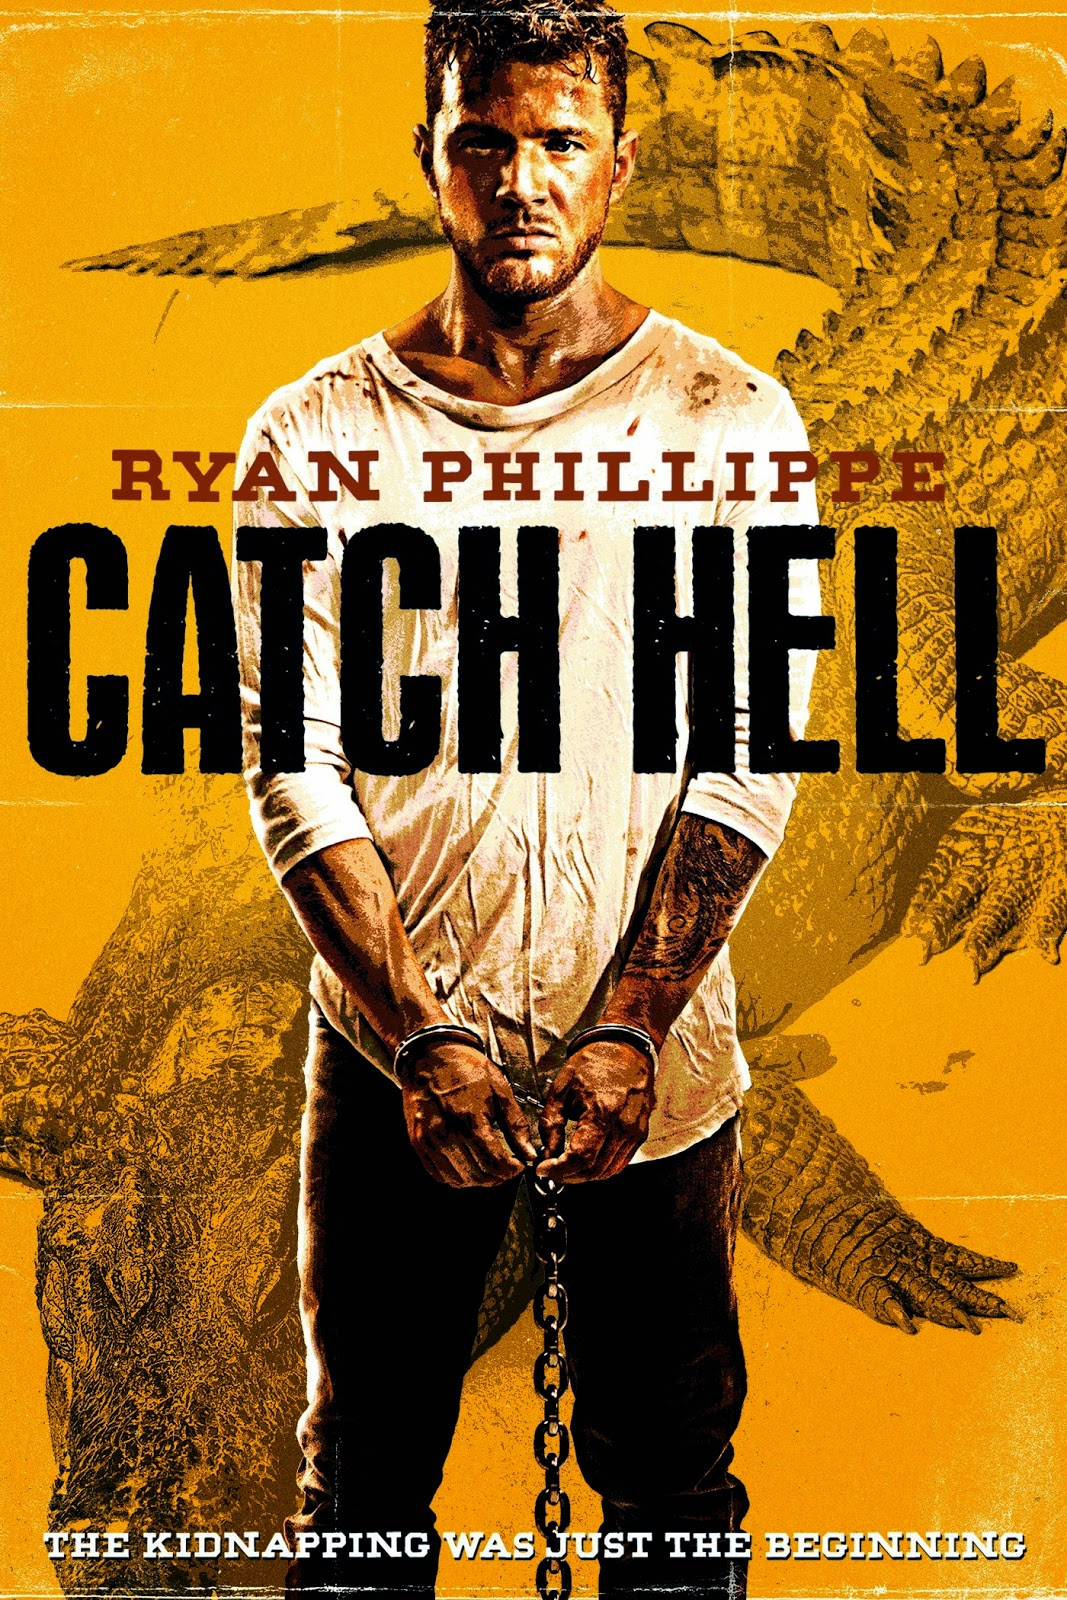 Catch hell (2014) Poster